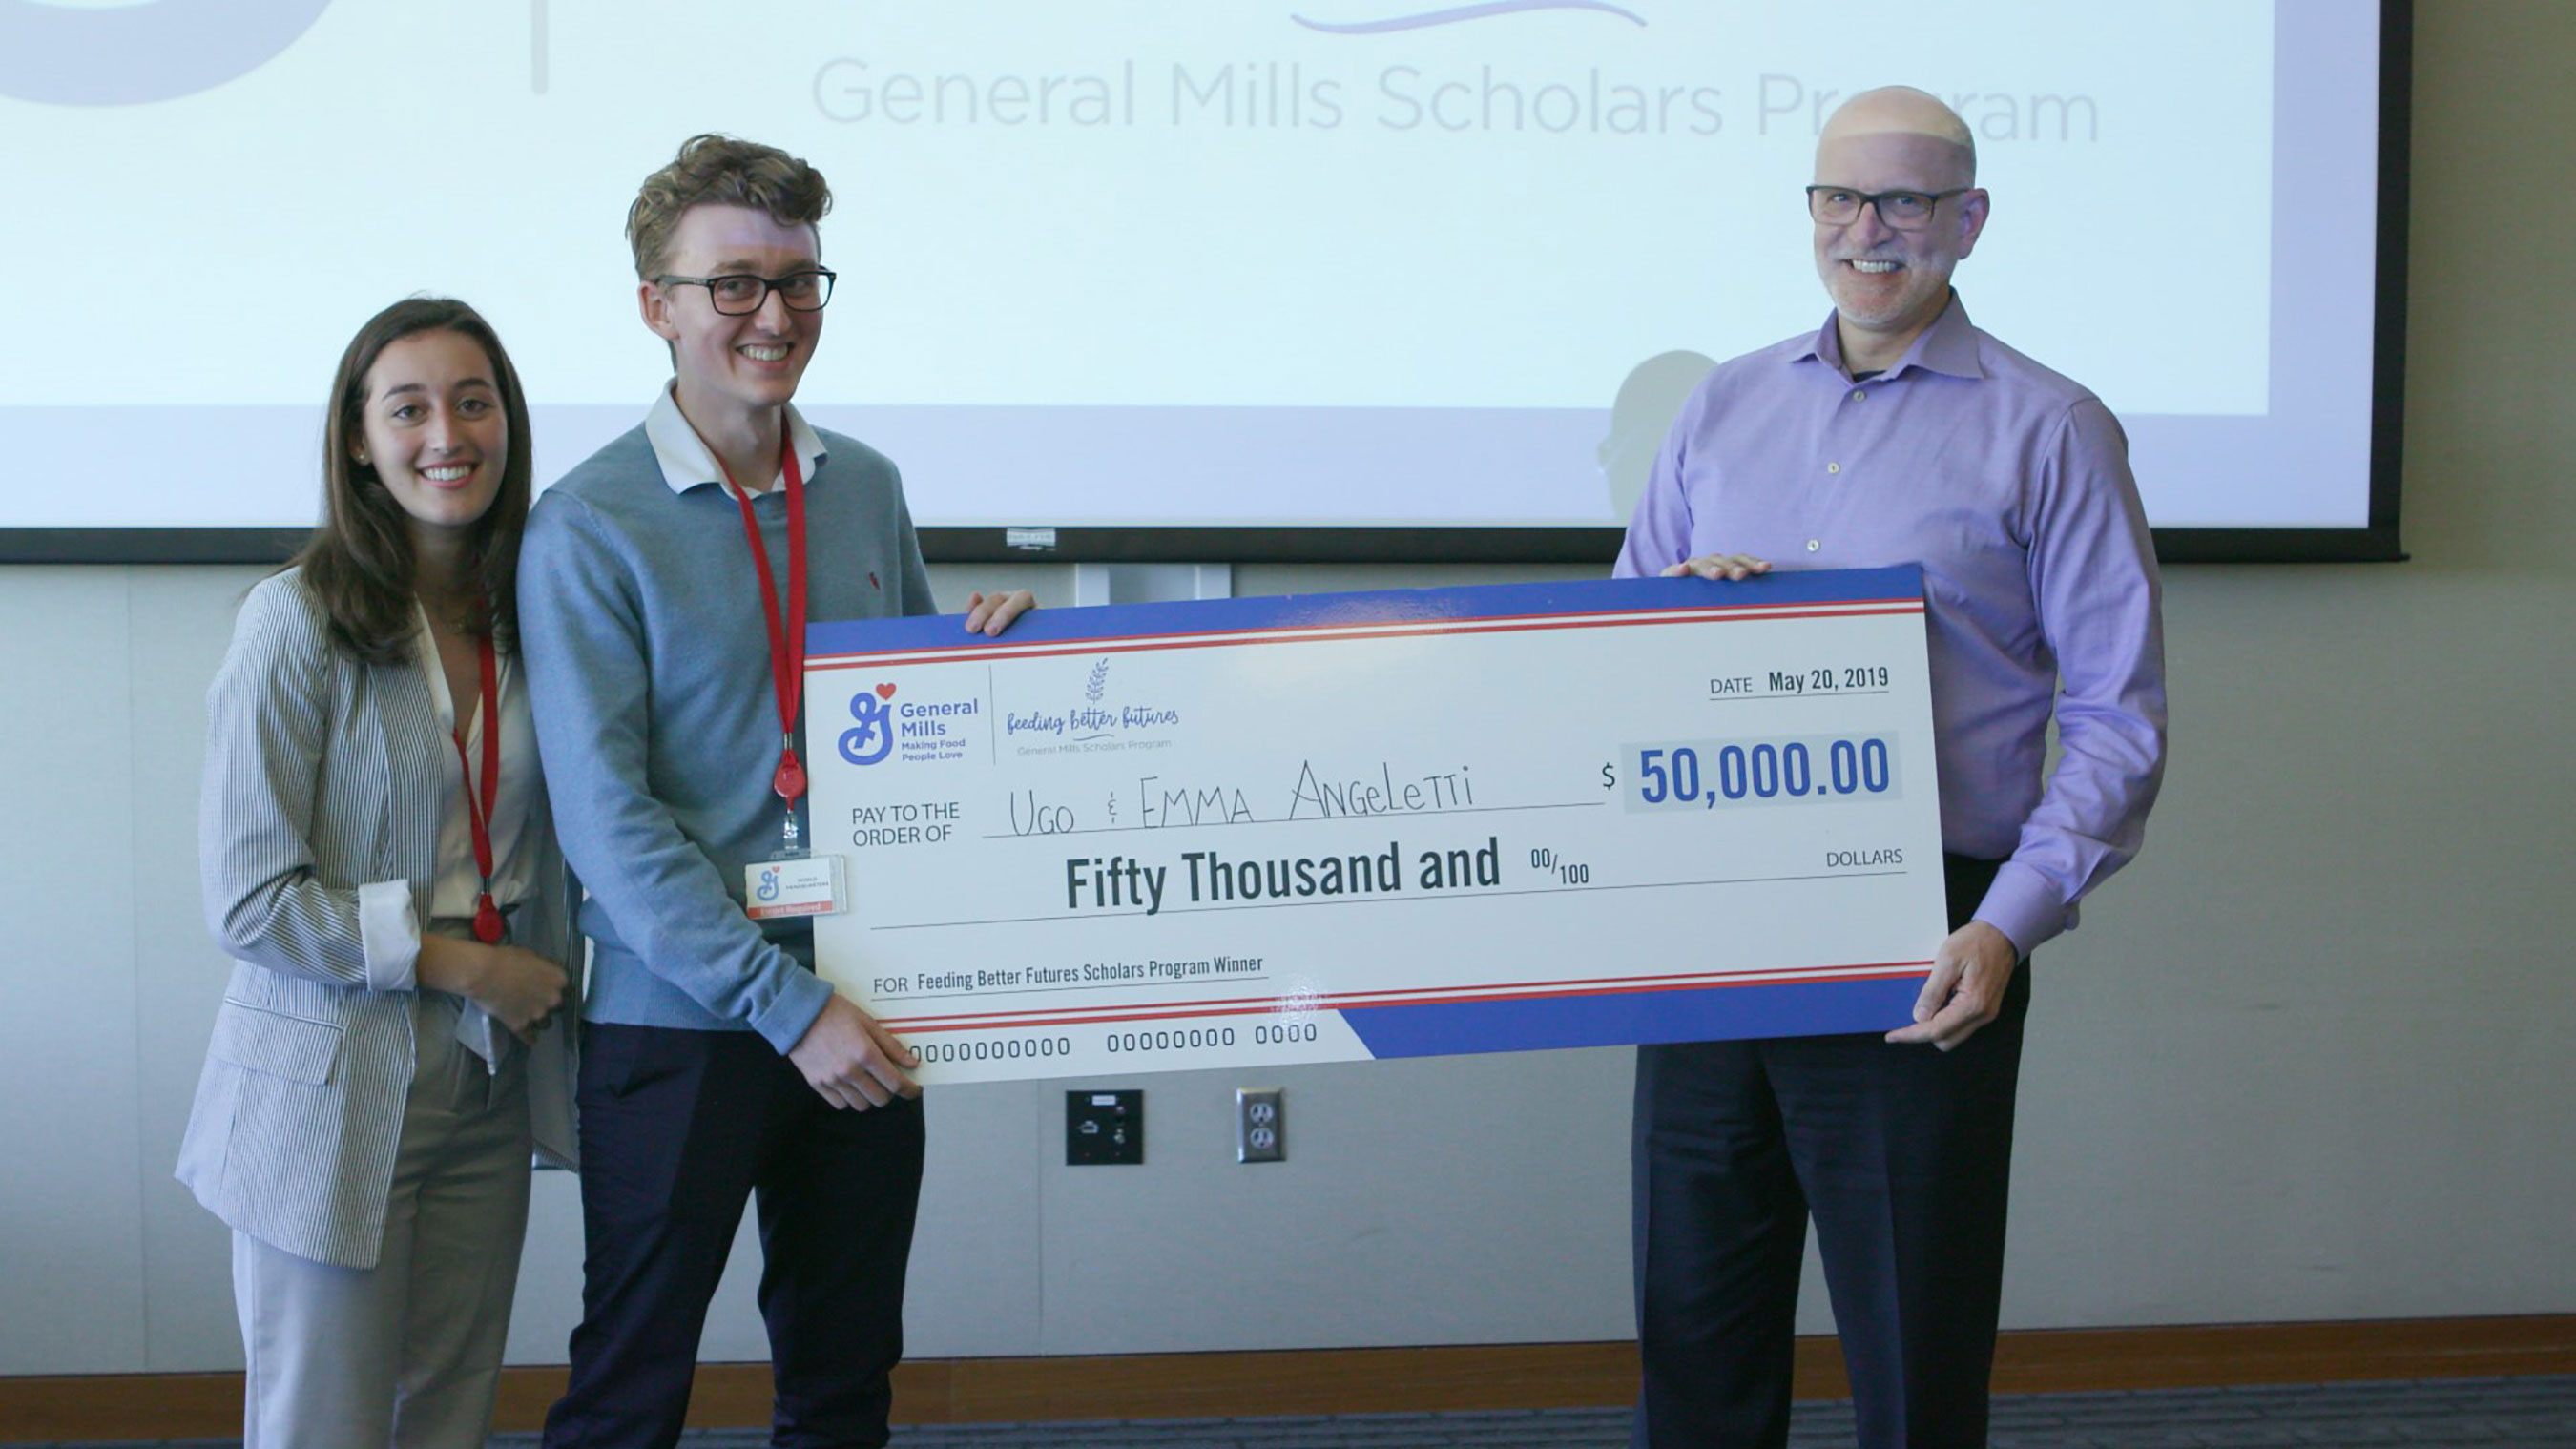 Jeff Harmening, CEO and chairman of General Mills, presents $50,000 to Ugo and Emma Angeletti